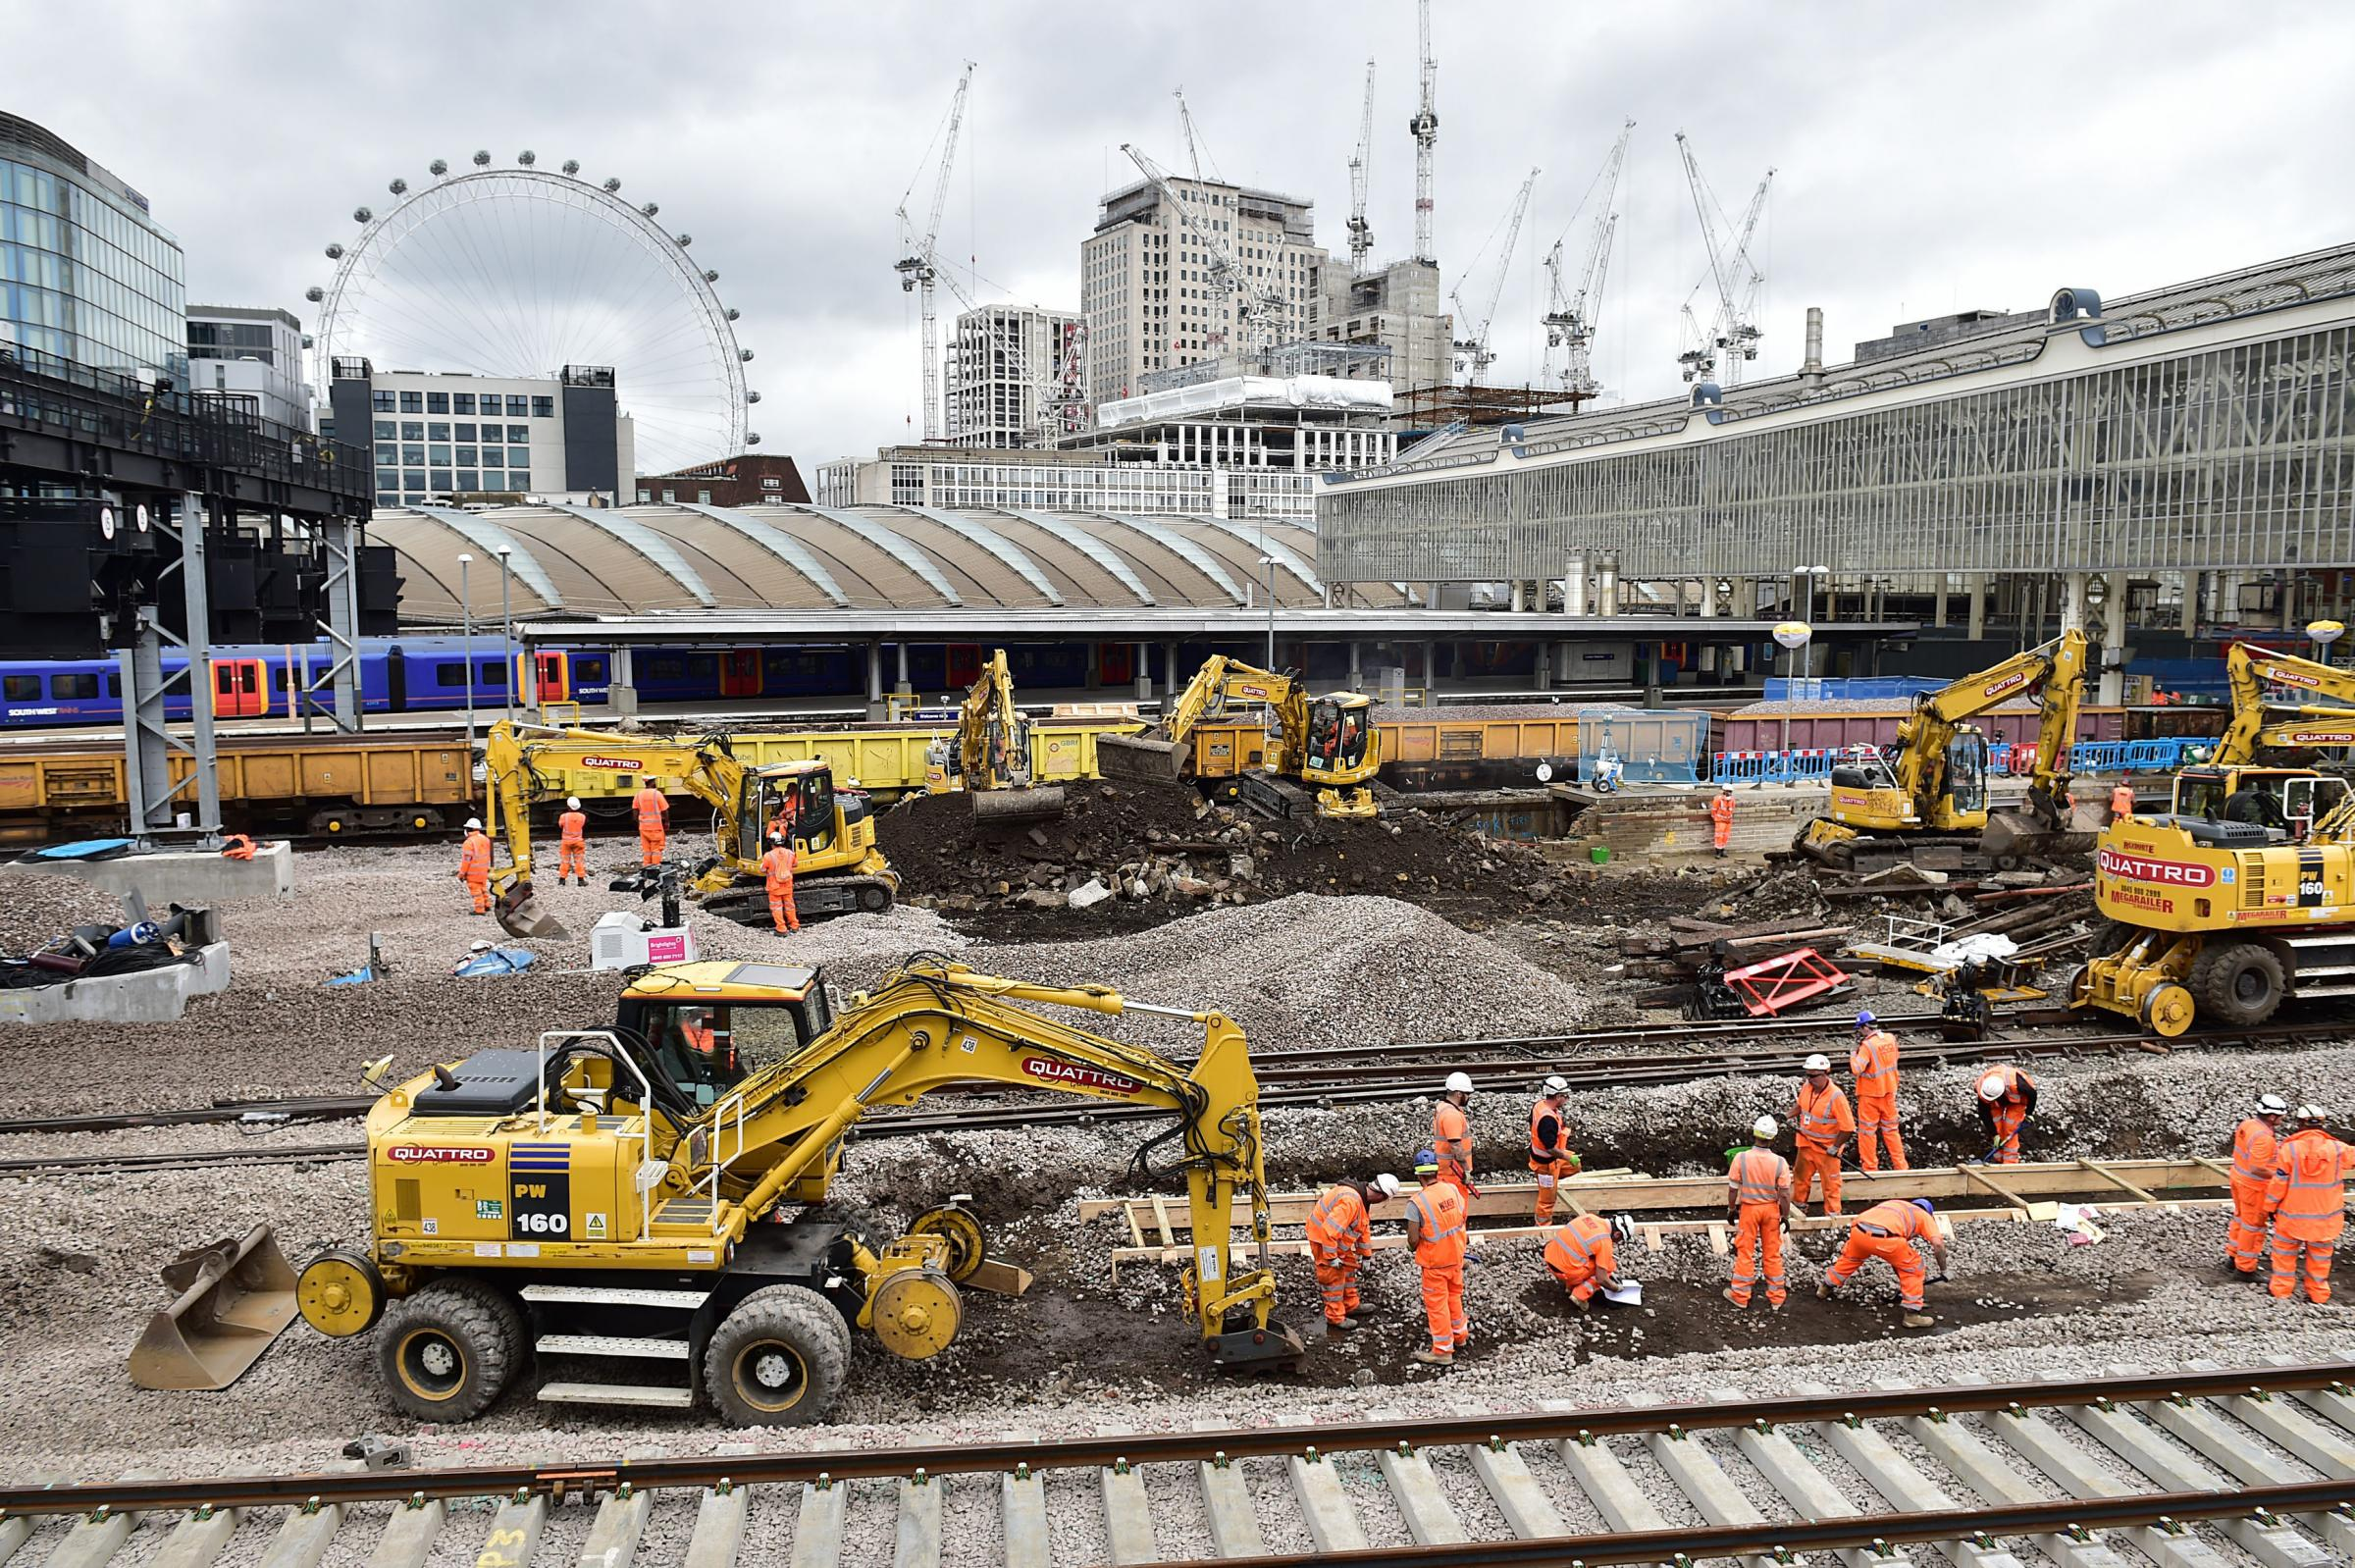 Engineering work at Waterloo Station in London. Photo: PA Wire